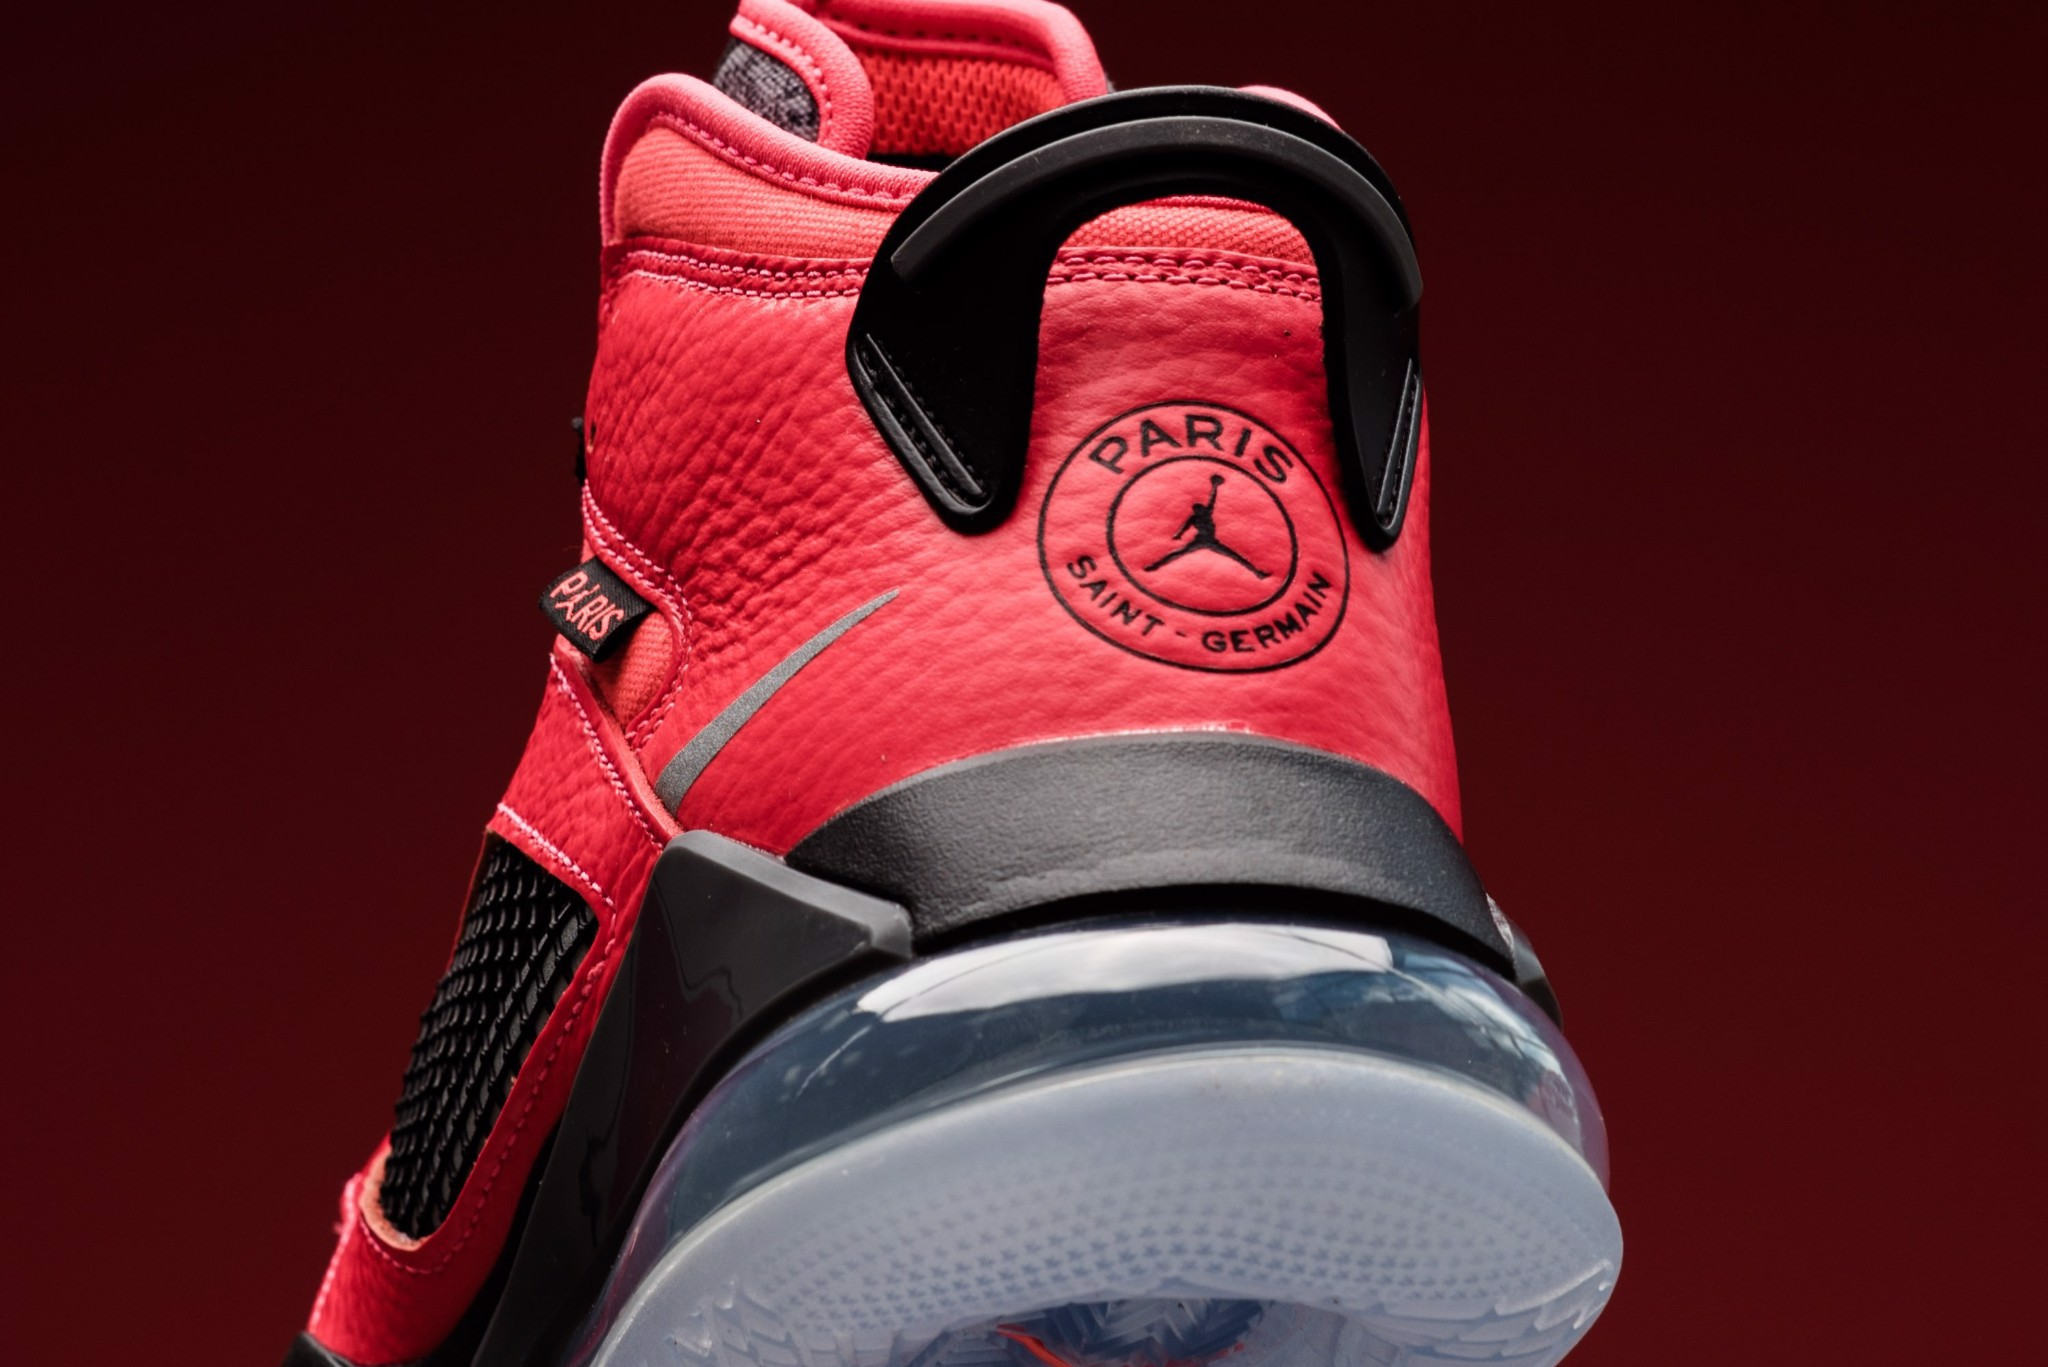 Paris Saint-Germain x Jordan Mars 270